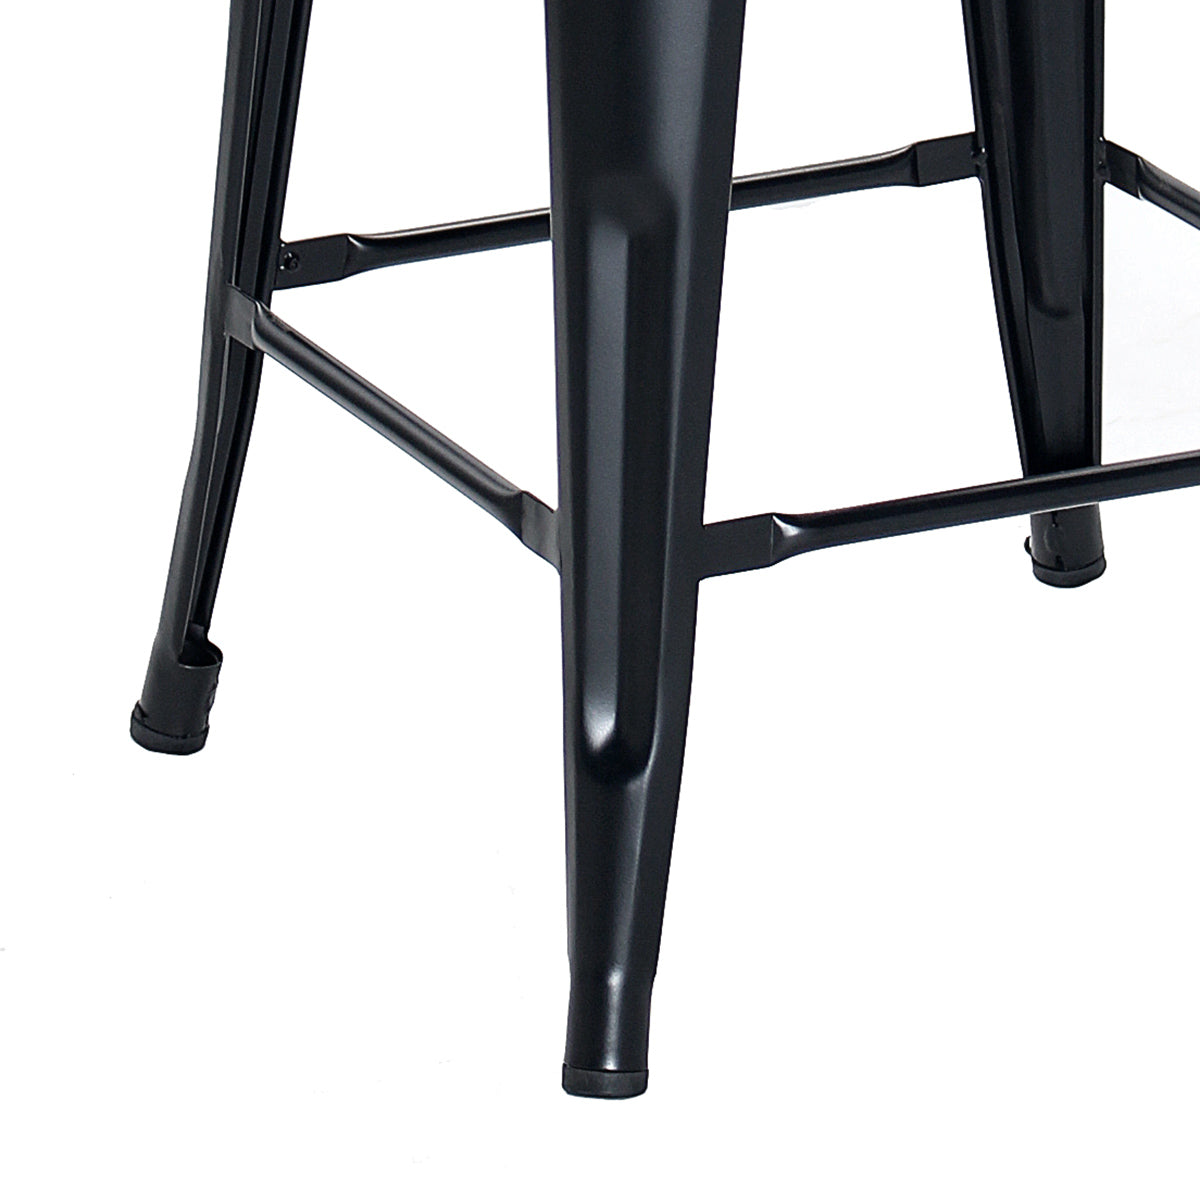 Buschman Set of 4 Matte Black 26 Inch Counter Height Metal Bar Stools, Indoor/Outdoor